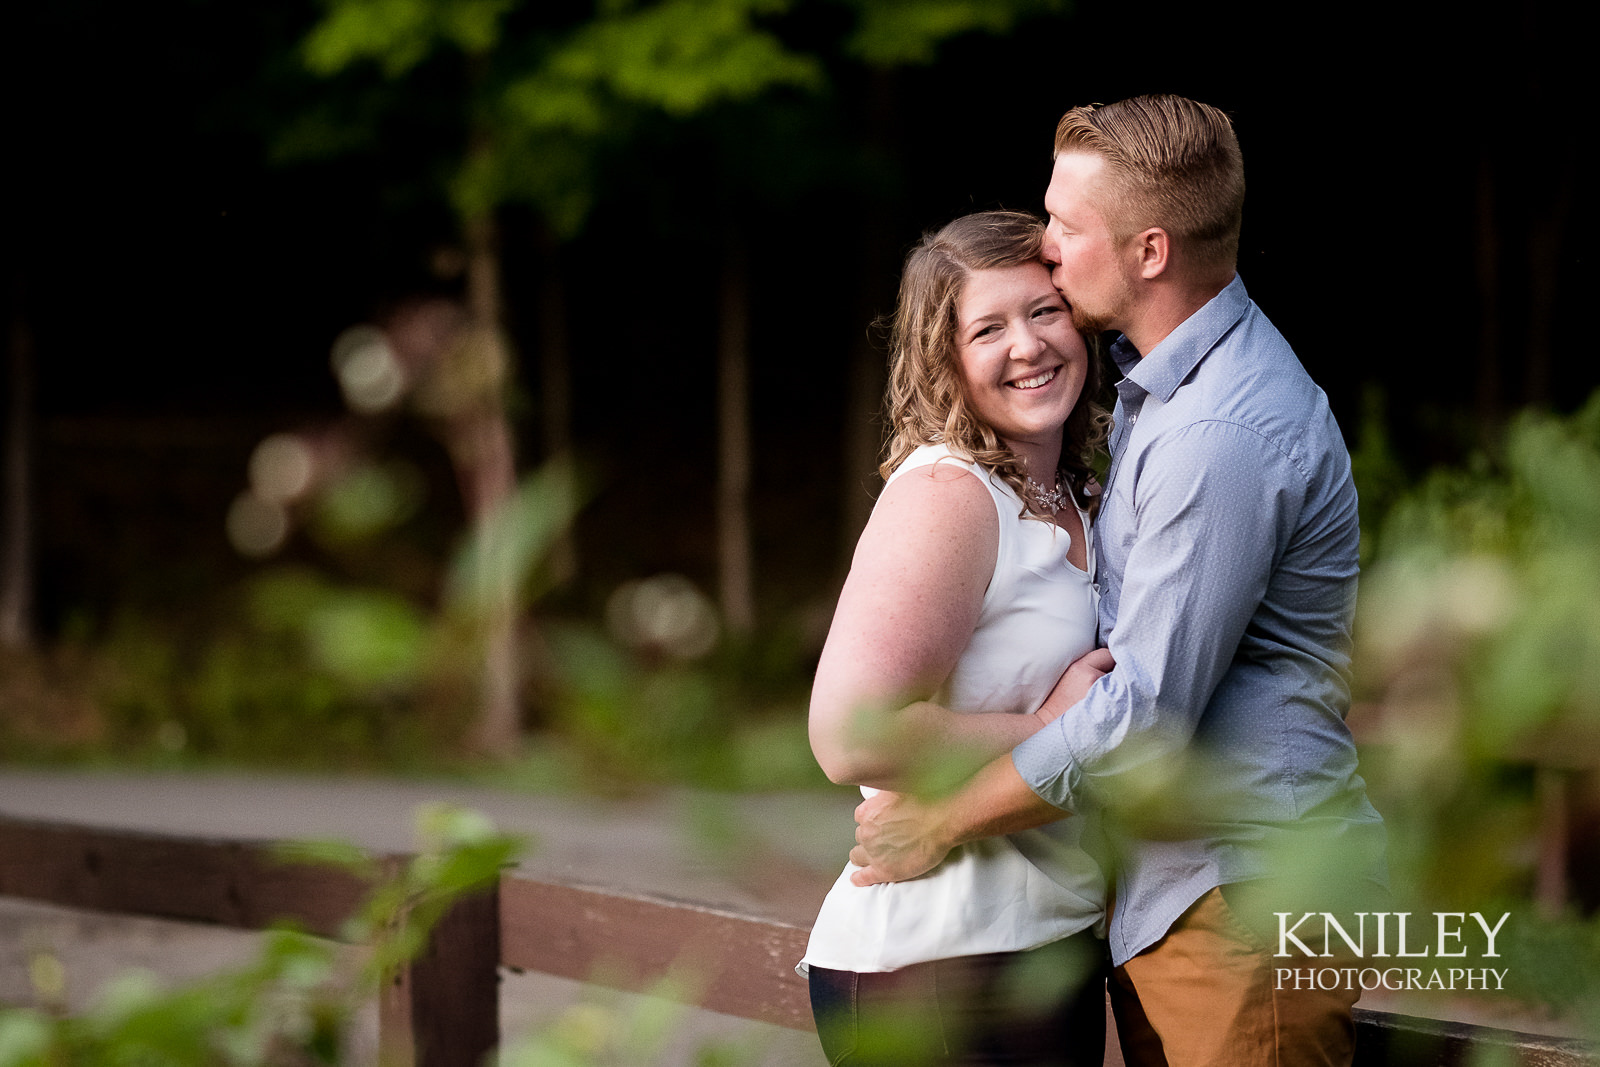 056 - Letchworth State Park Engagement Pictures -XT2A6144.jpg